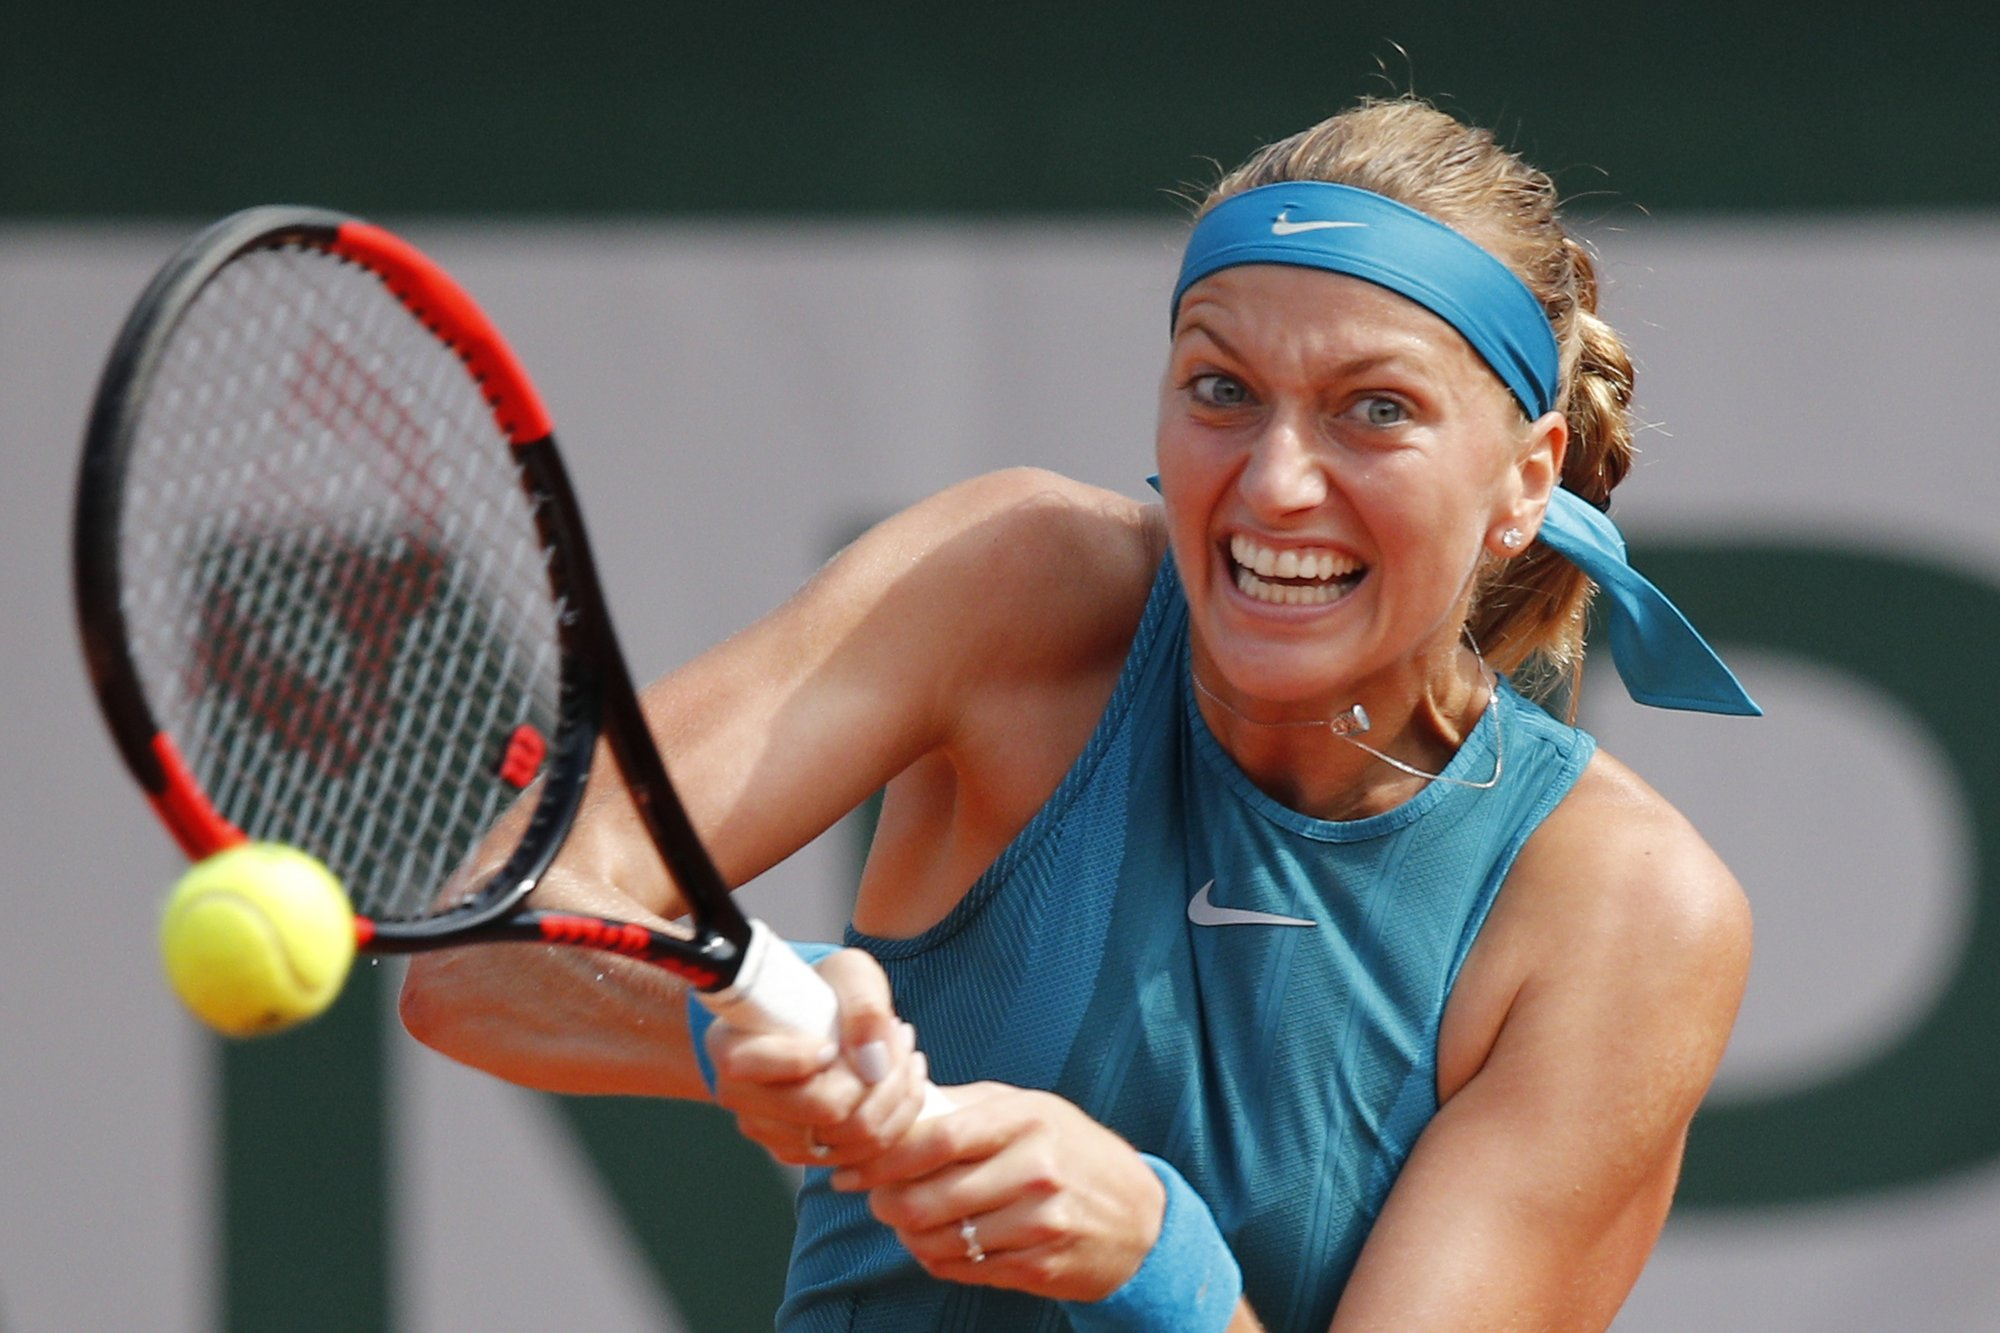 The Latest: 2-time Wimbledon champ Kvitova out of French